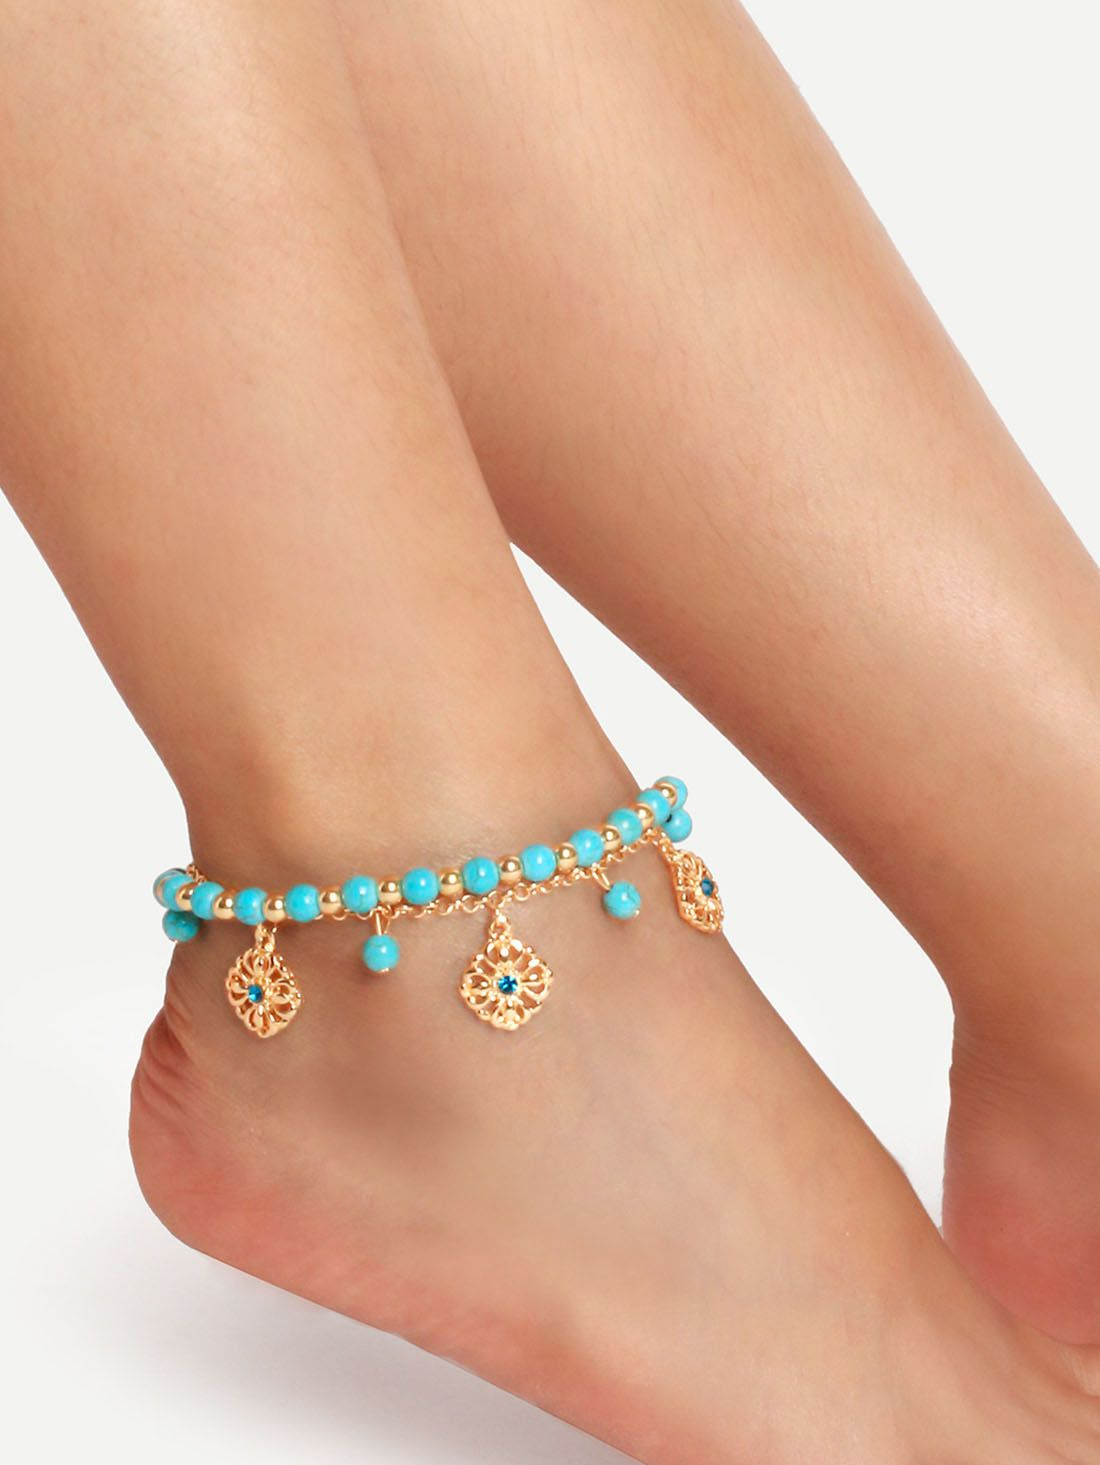 bloomingdales dollar bracelet gallery jewelry gold bloomingdale yellow lyst designer bracelets in ankle anklet sand s